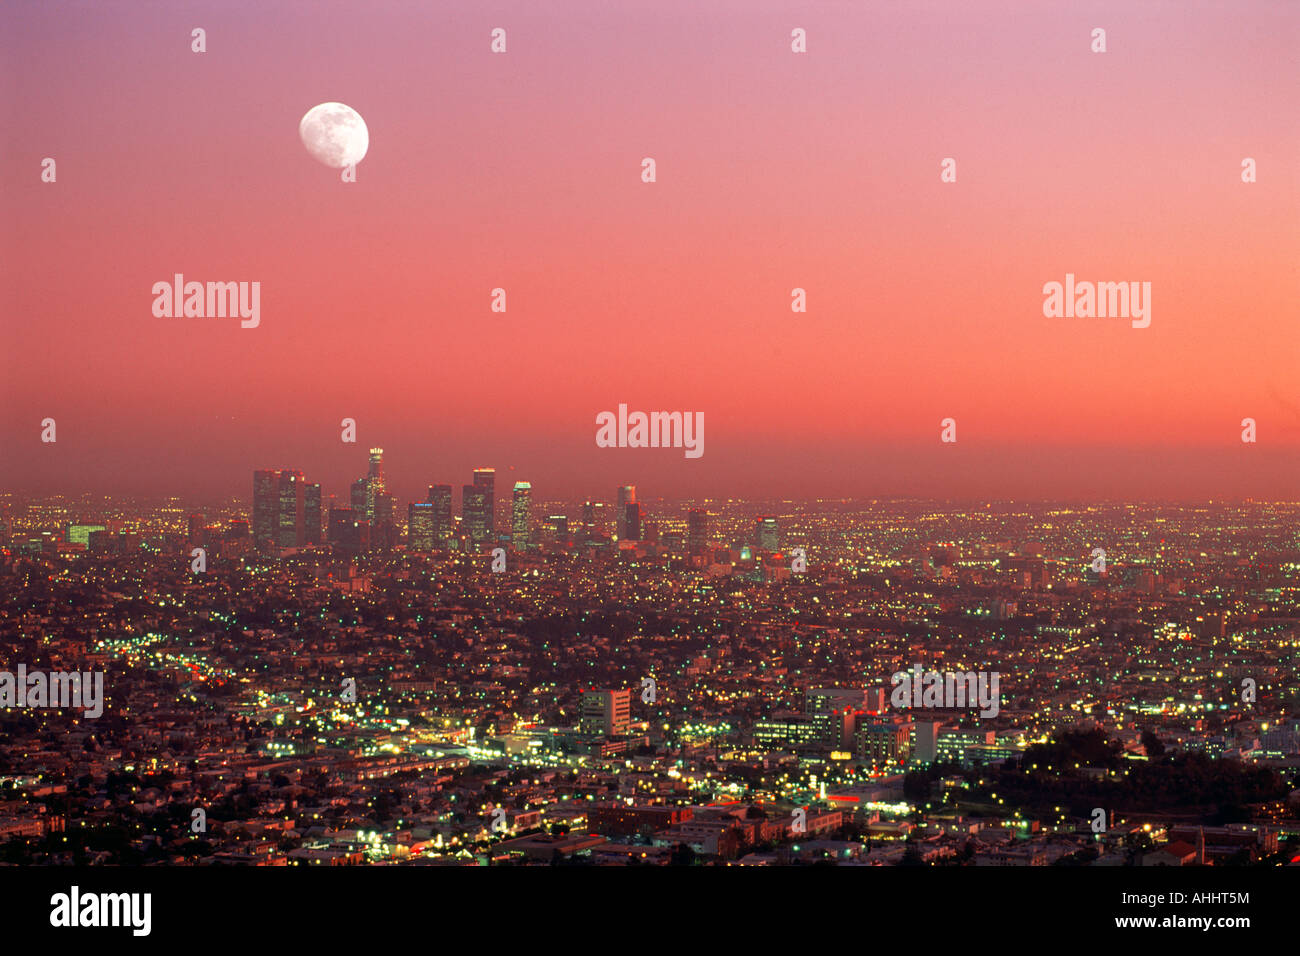 Los Angeles Civic Center amid urban sprawl under rising moon at dusk from Griffith Park Observatory - Stock Image